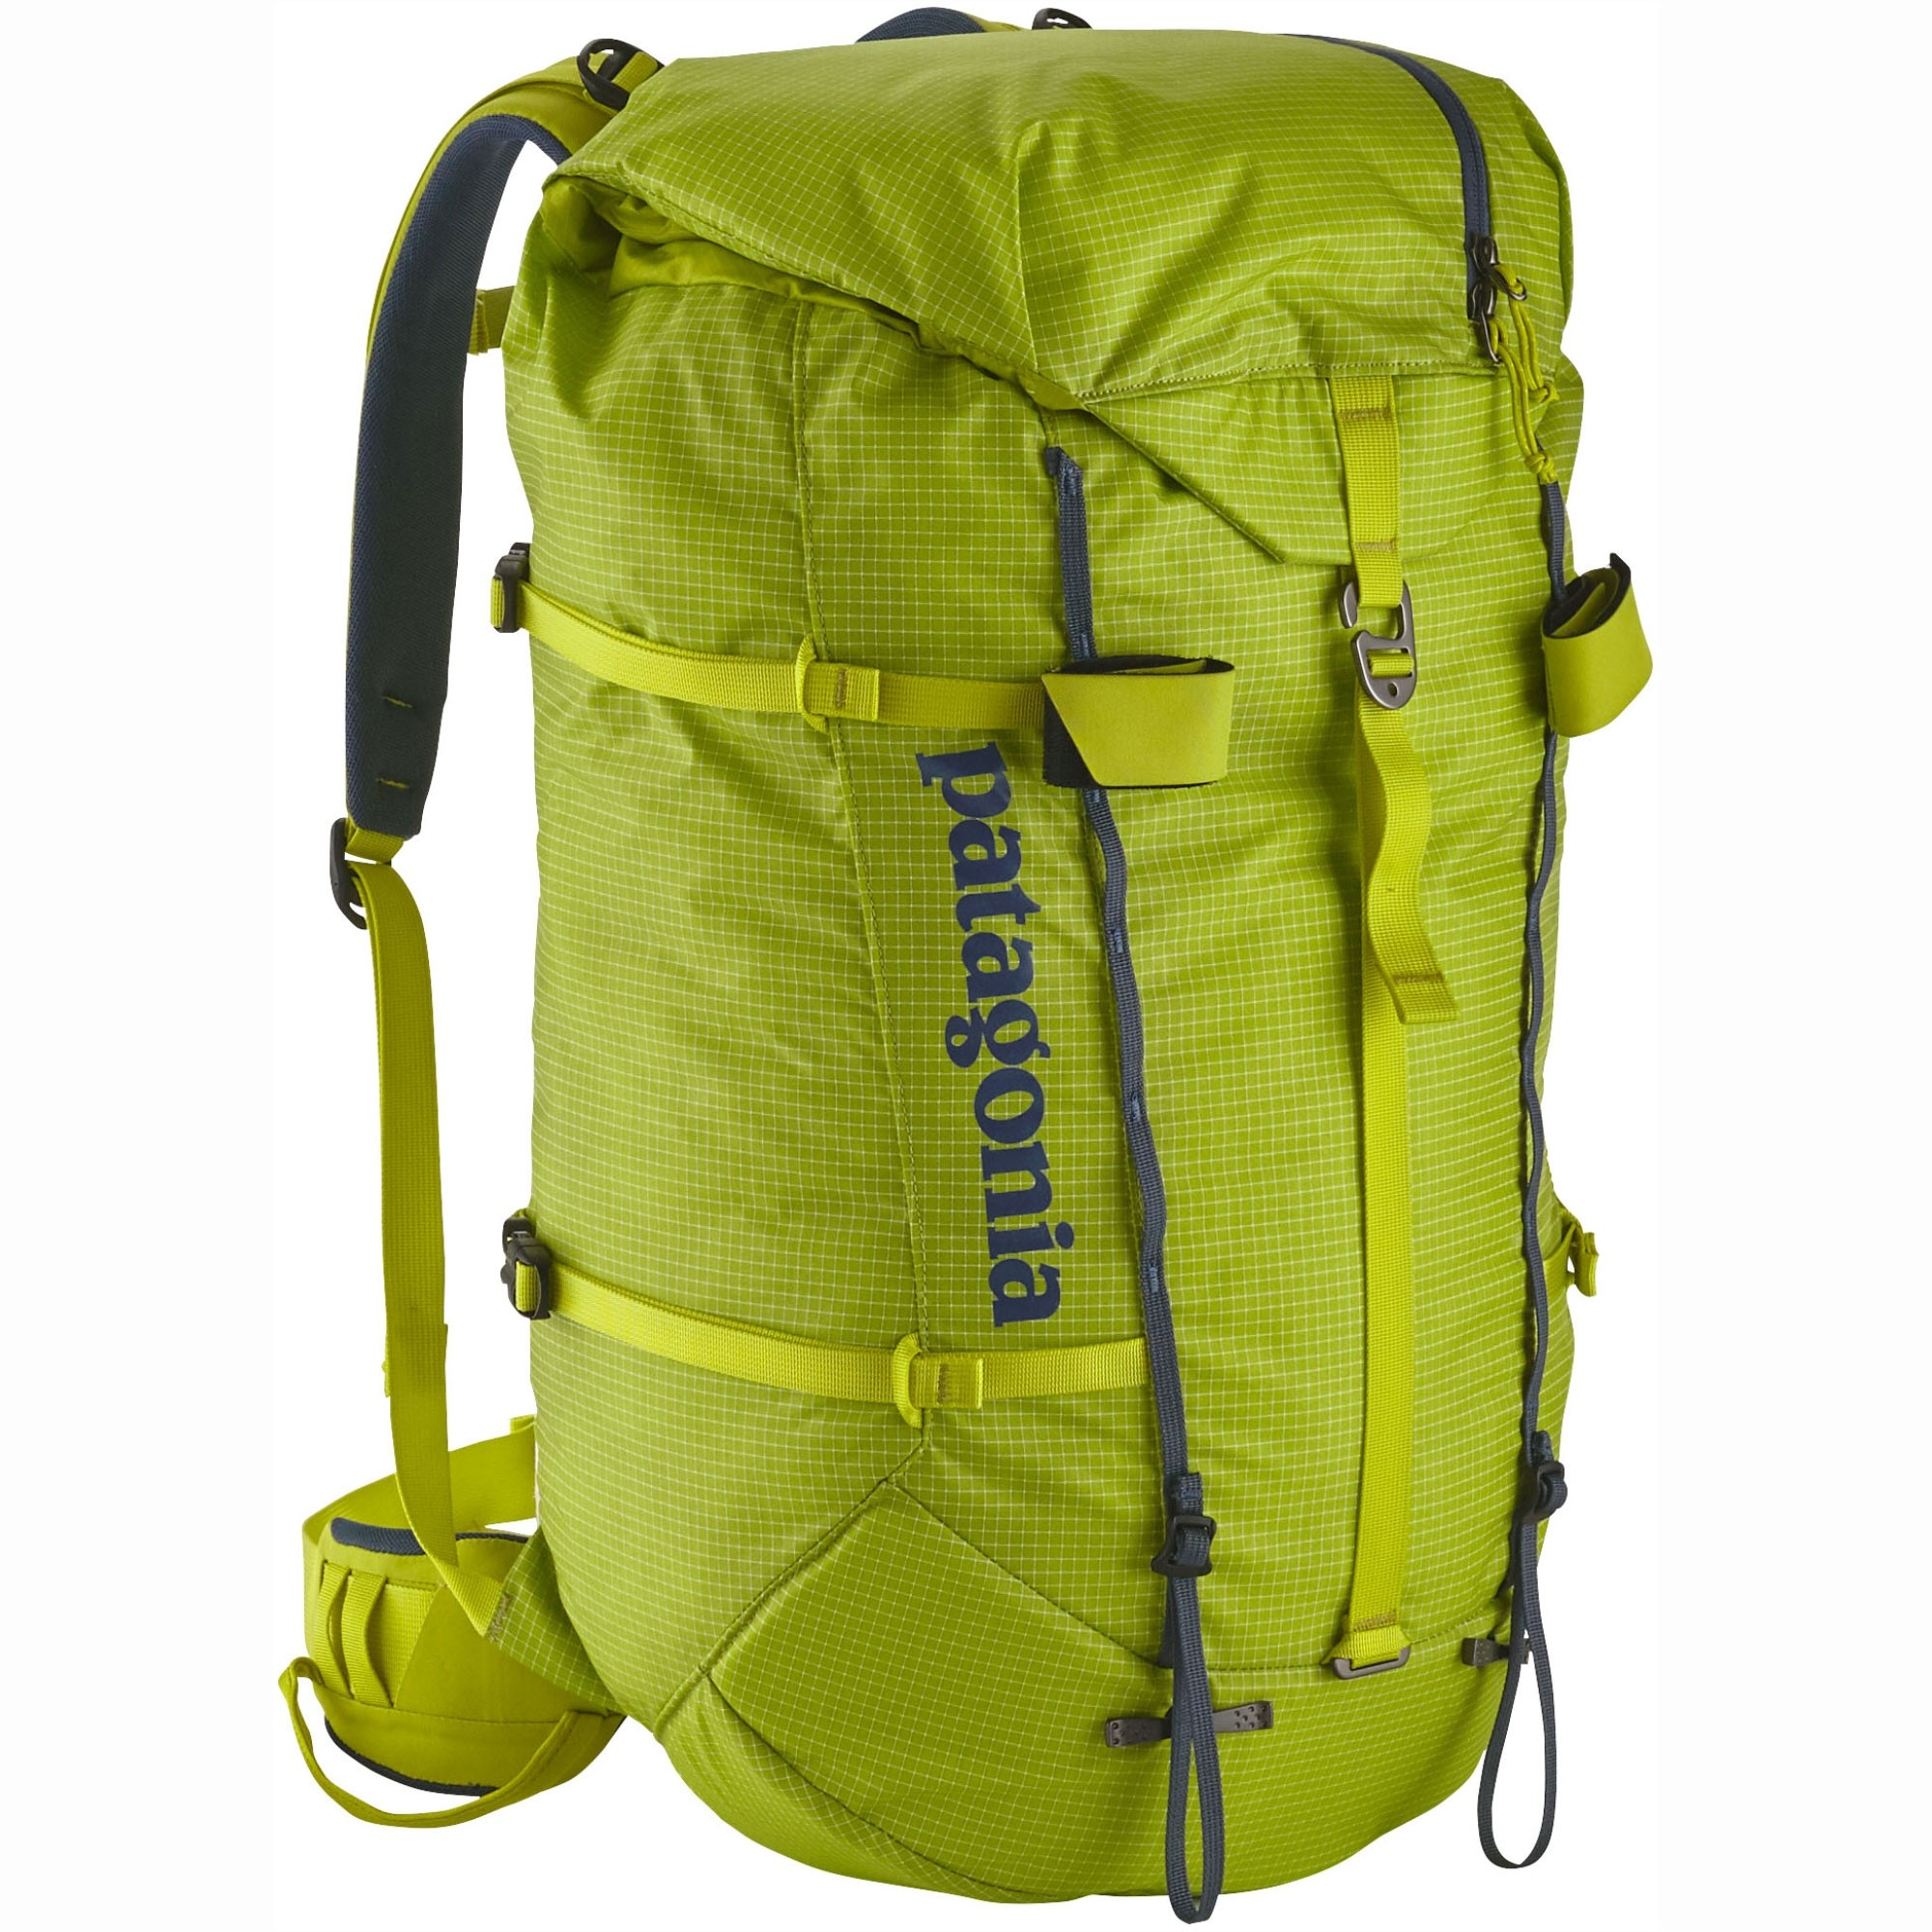 Patagonia-Ascensionist-Pack-40L-Light-Gecko-Green-S18